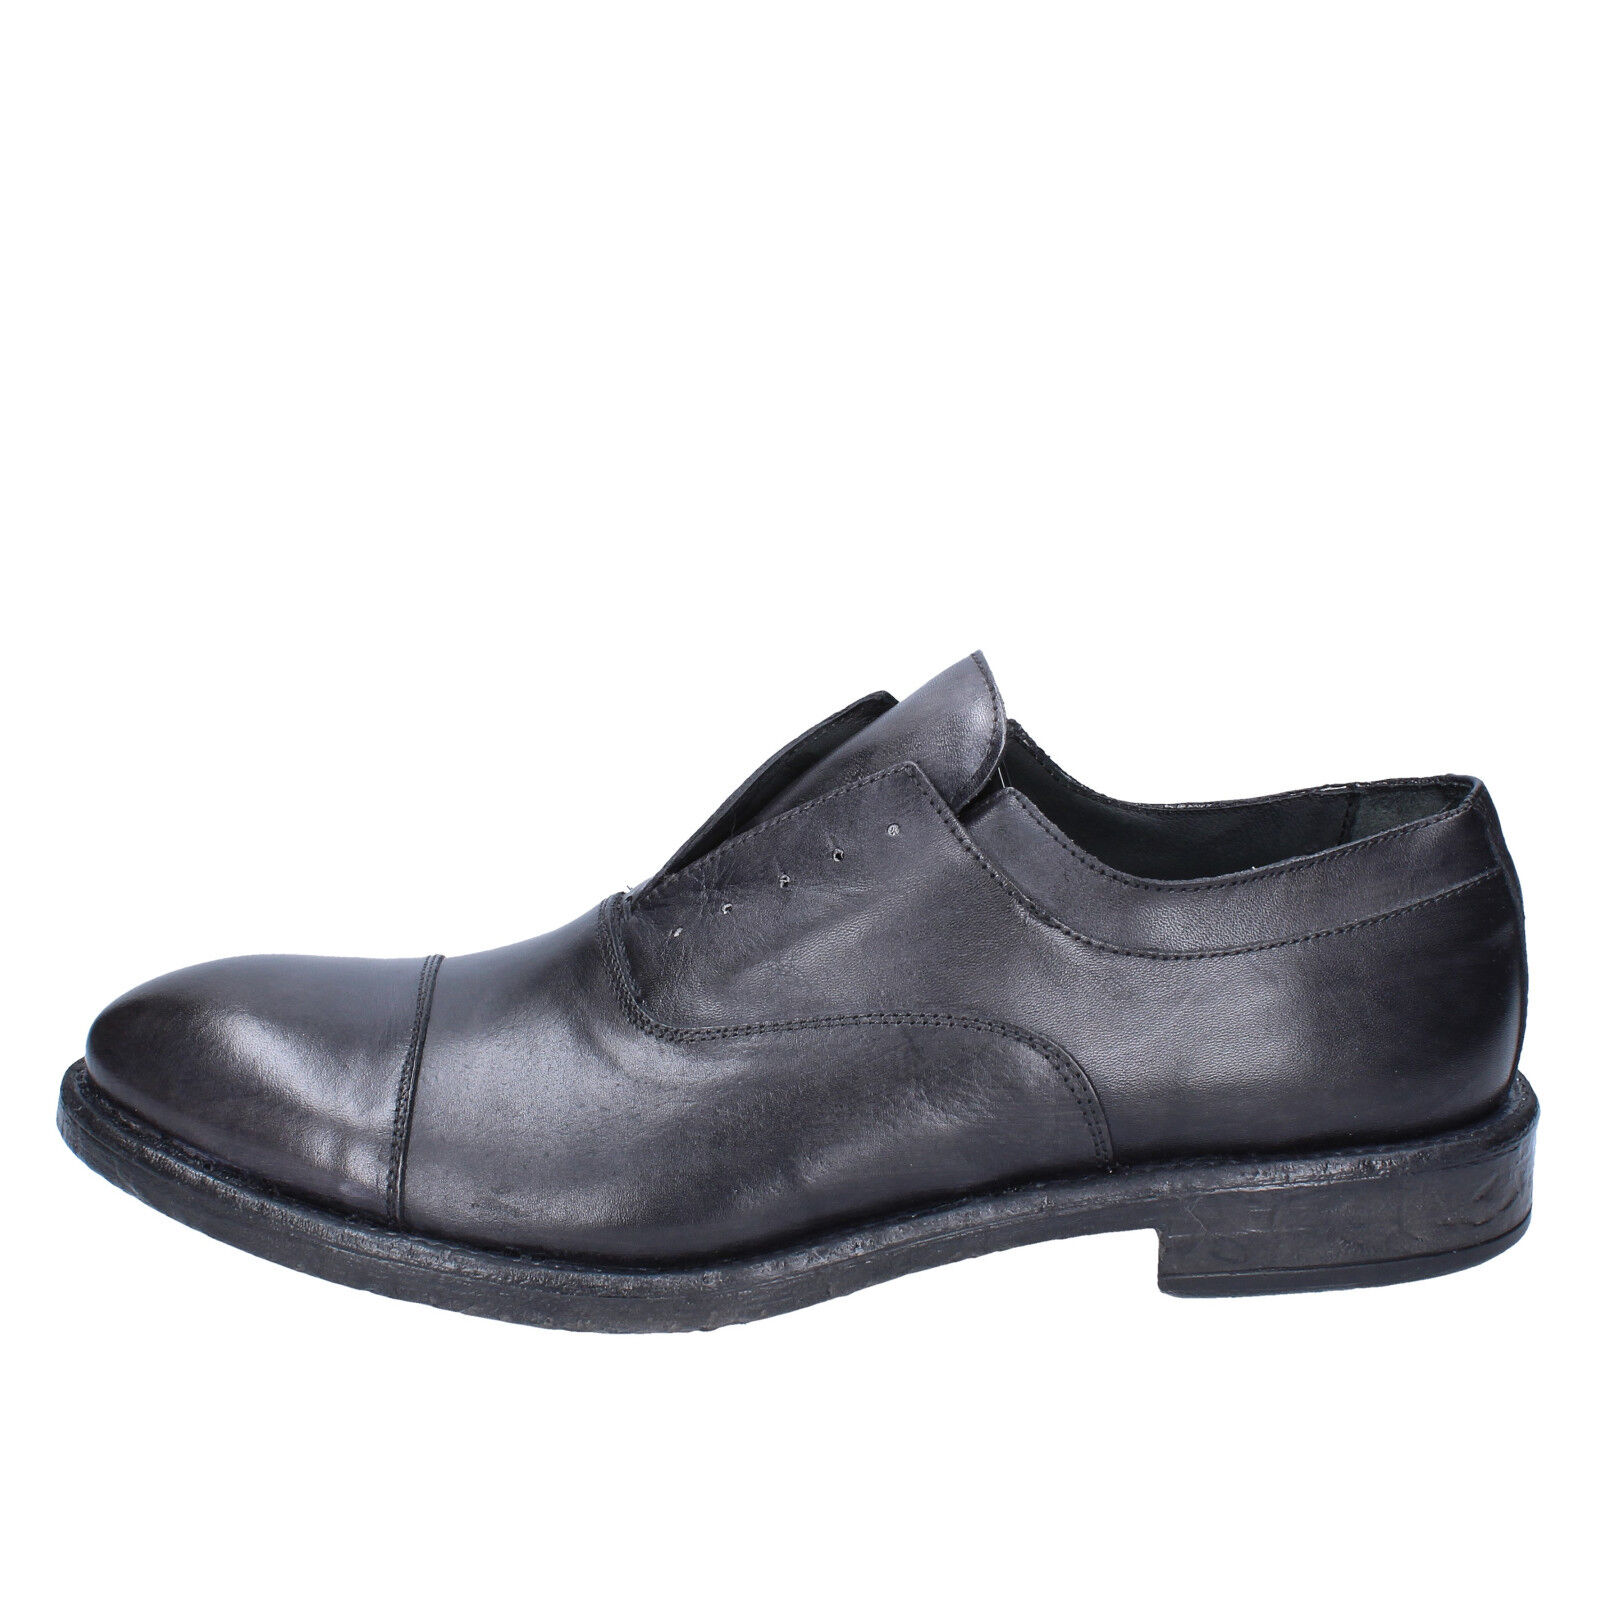 cdb12170ef0 men s shoes +2 MADE IN ITALY 10 () () () elegant dark gray leather ...